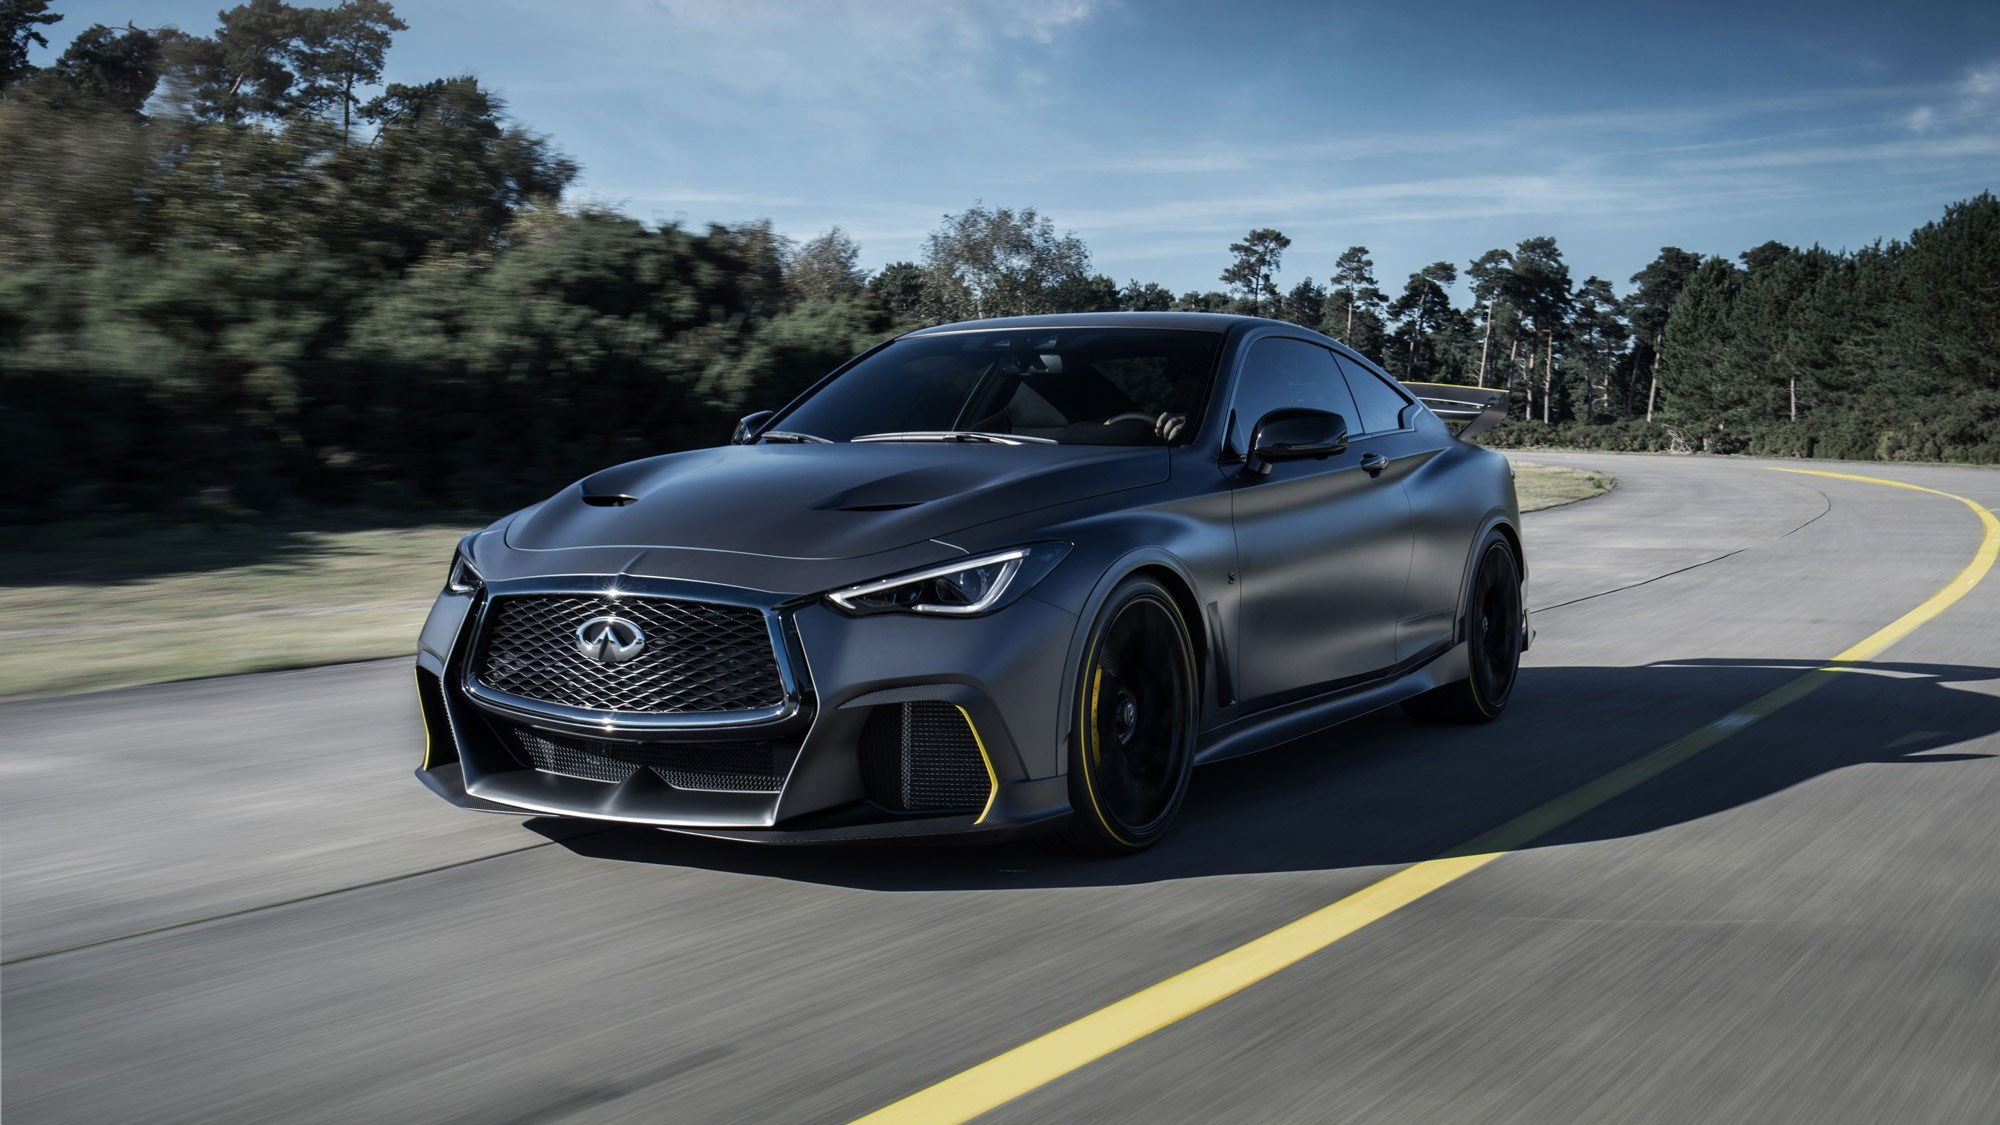 Infiniti Q60 Project Black S: What We Know Now